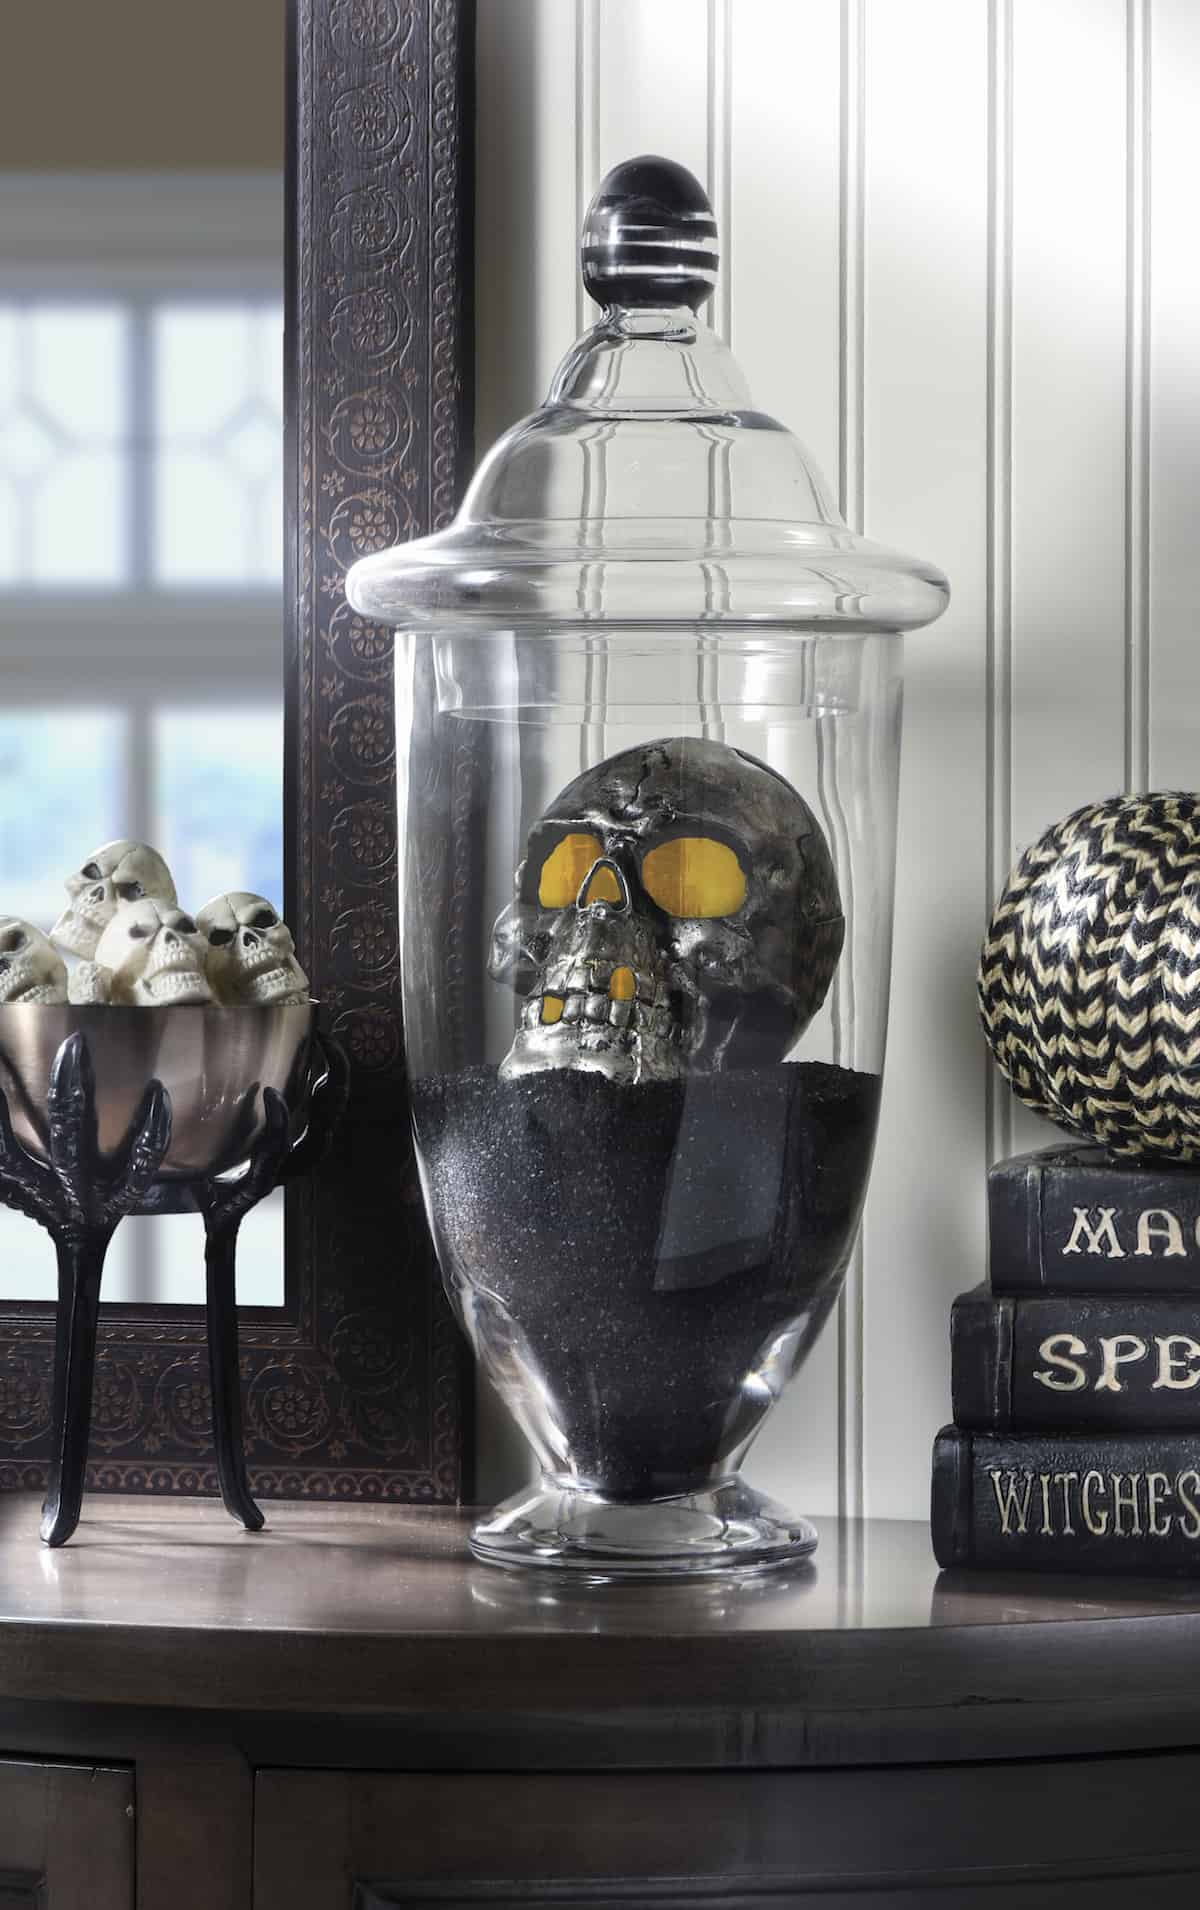 This DIY Halloween skull display takes only a few minutes to put together - it's the perfect last-minute holiday decor idea!